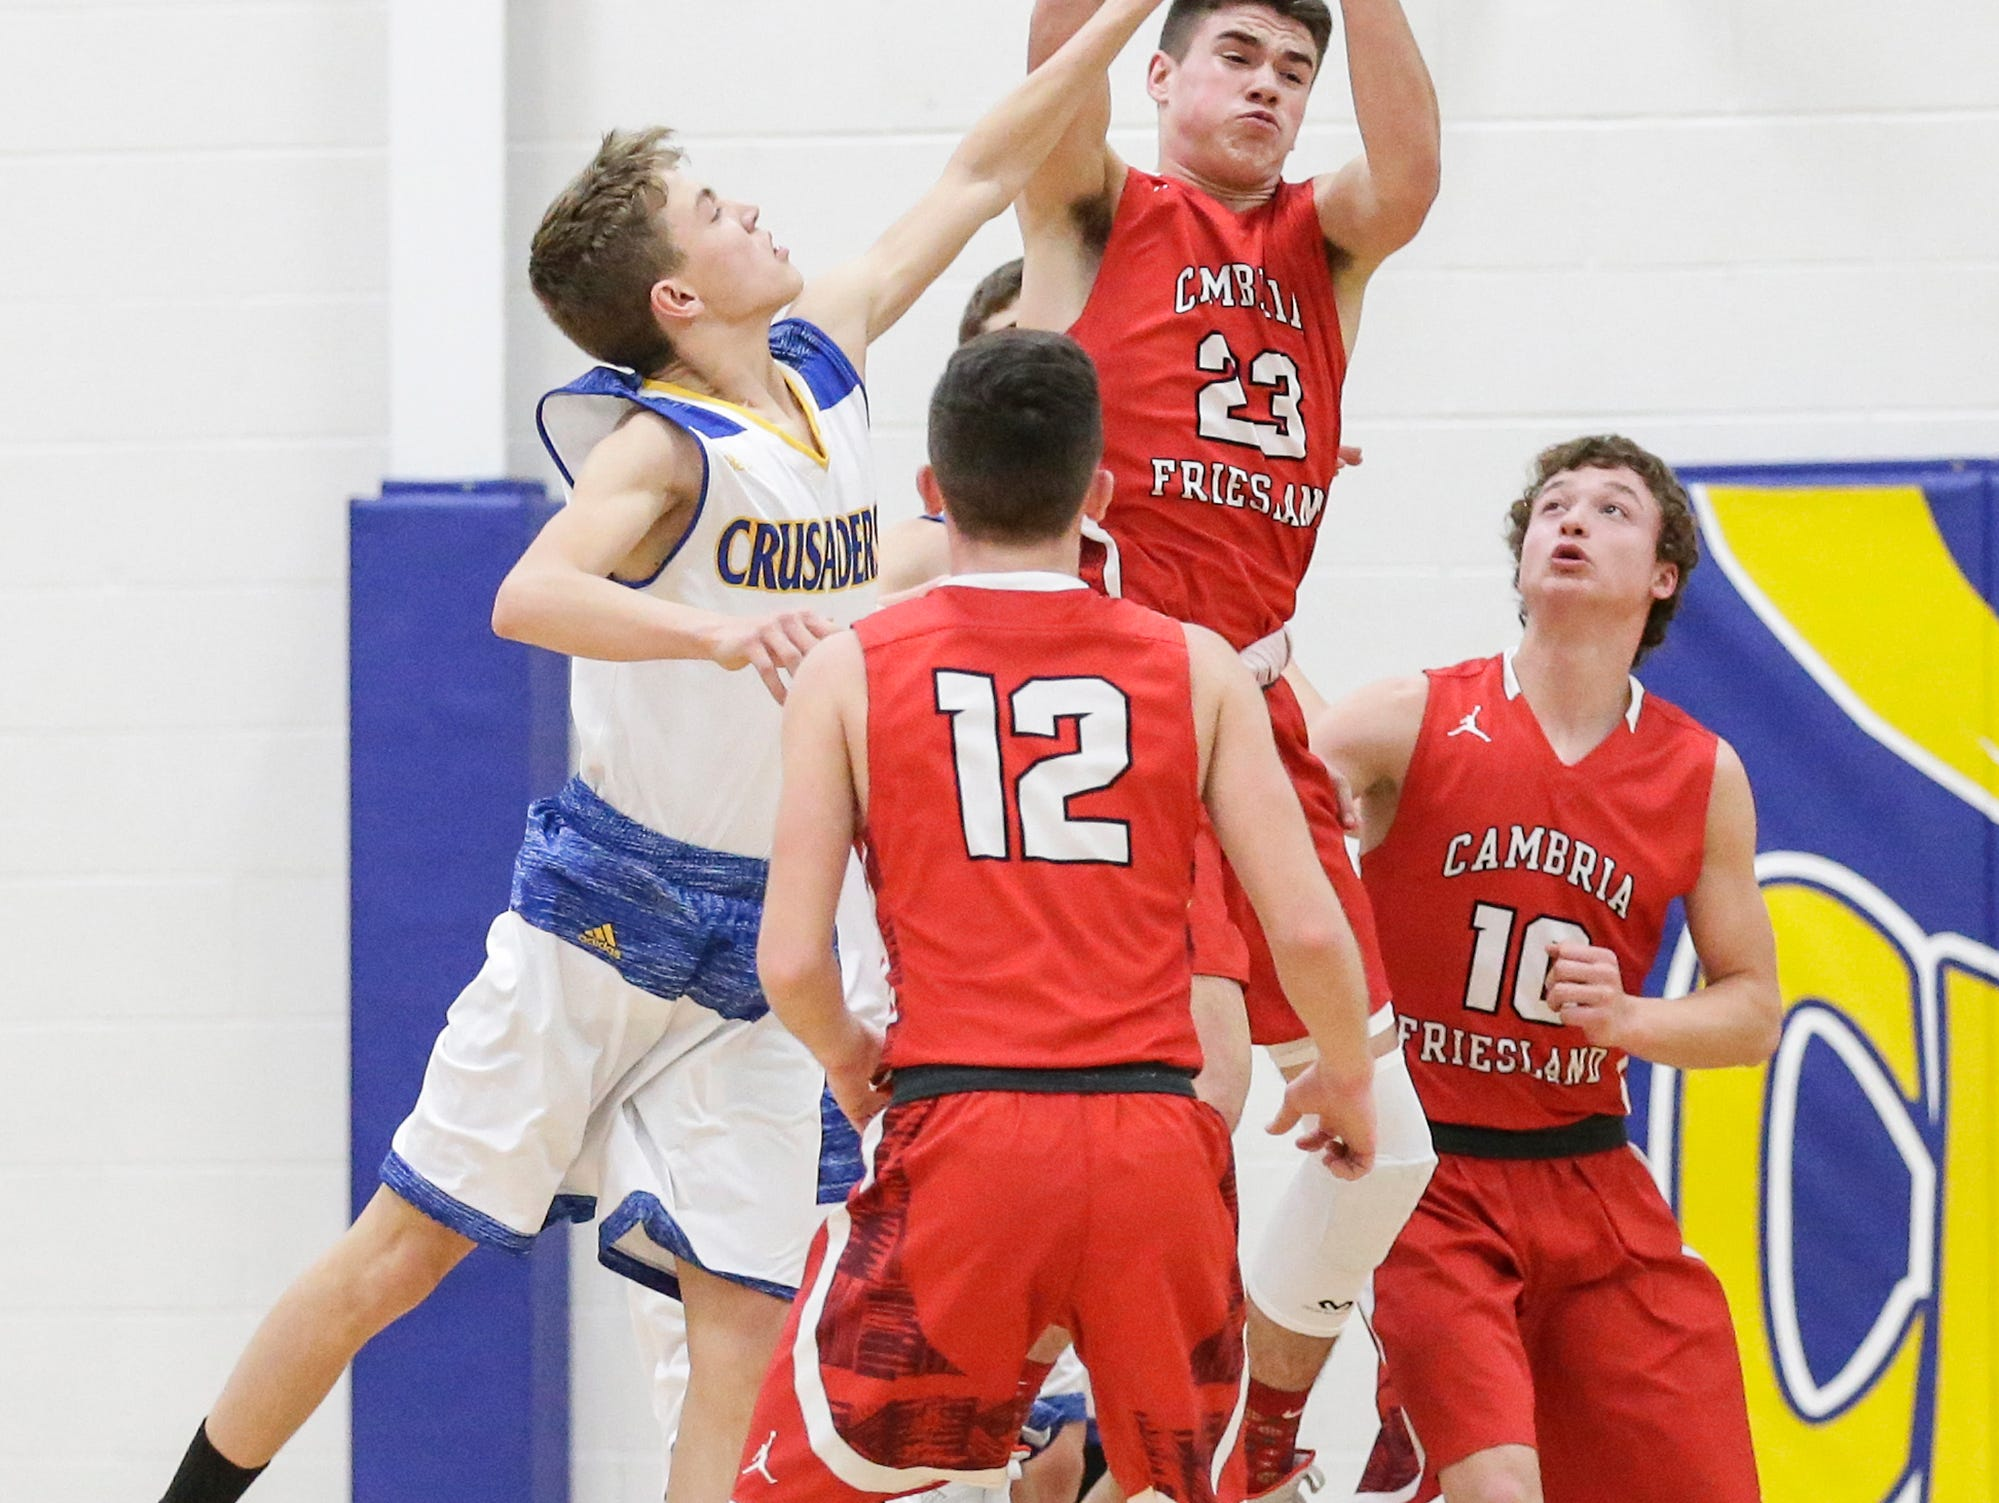 Central Wisconsin Christian High School boys basketball's Riley Westra and Cambria-Friesland's Griffin Hart go up for a rebound during their game Thursday, January 3, 2019 in Waupun. Cambria-Friesland won the game 62-61. Doug Raflik/USA TODAY NETWORK-Wisconsin